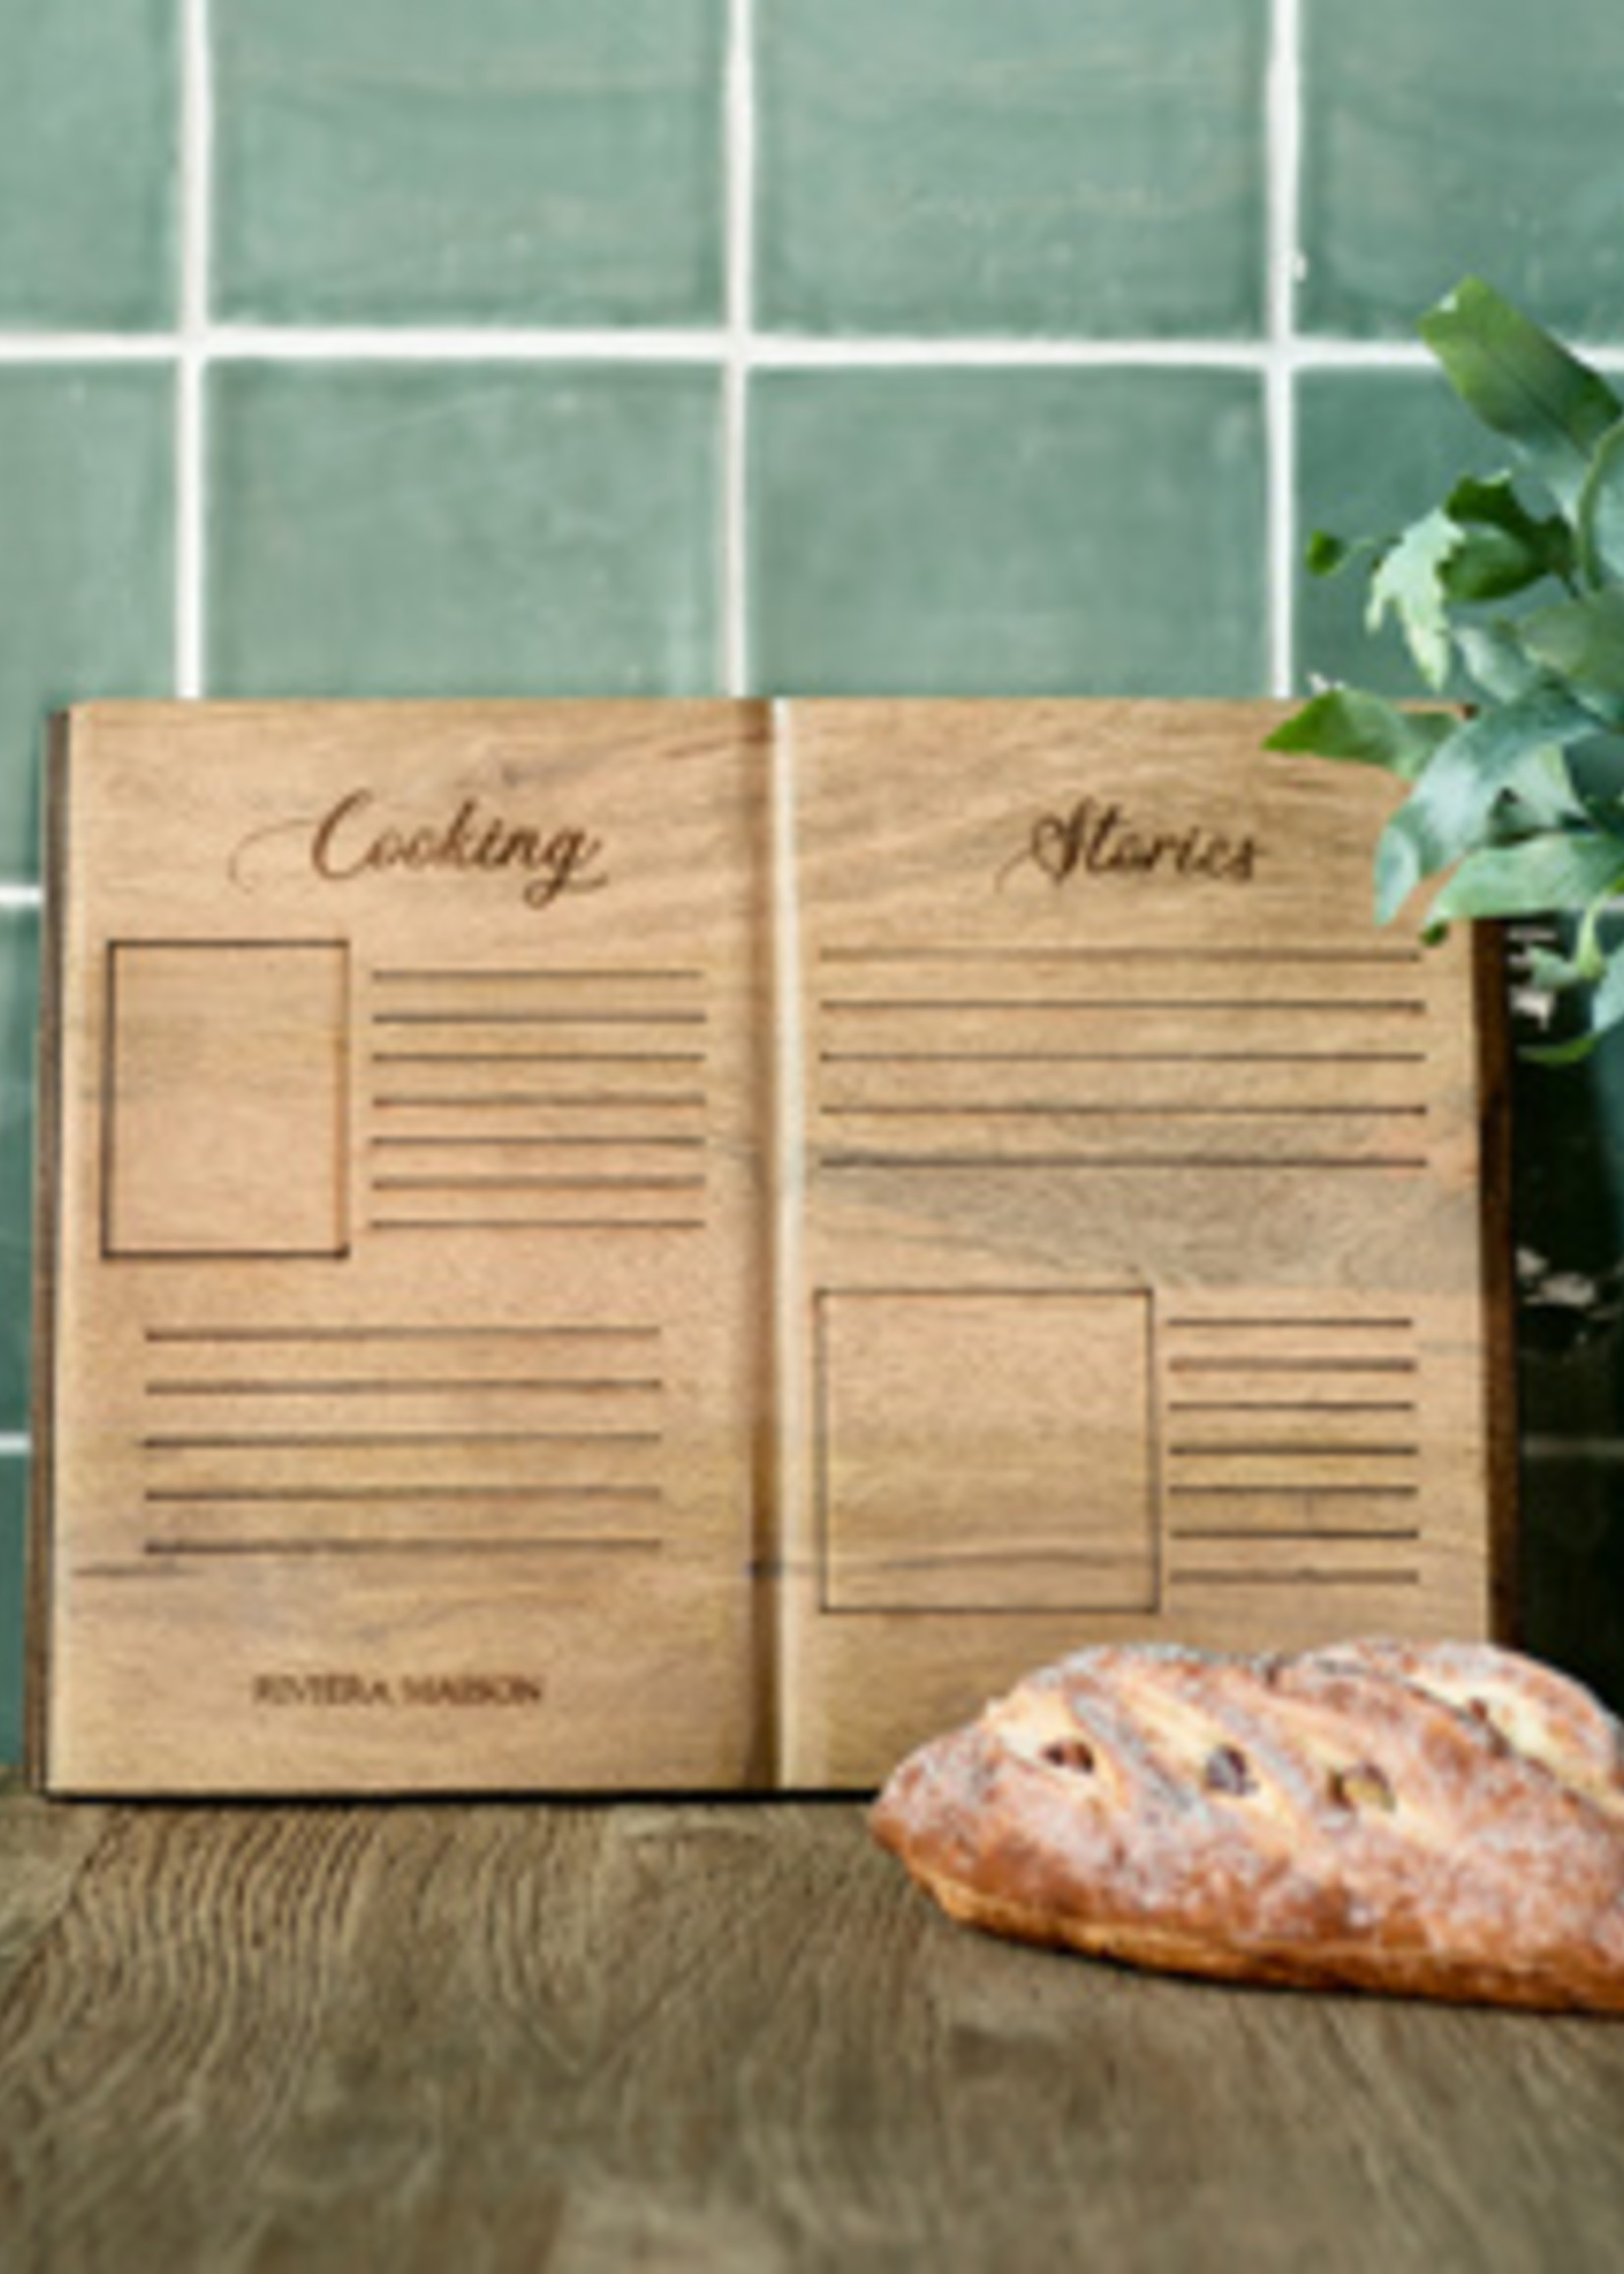 Riviera Maison Cooking Stories Chopping Board M